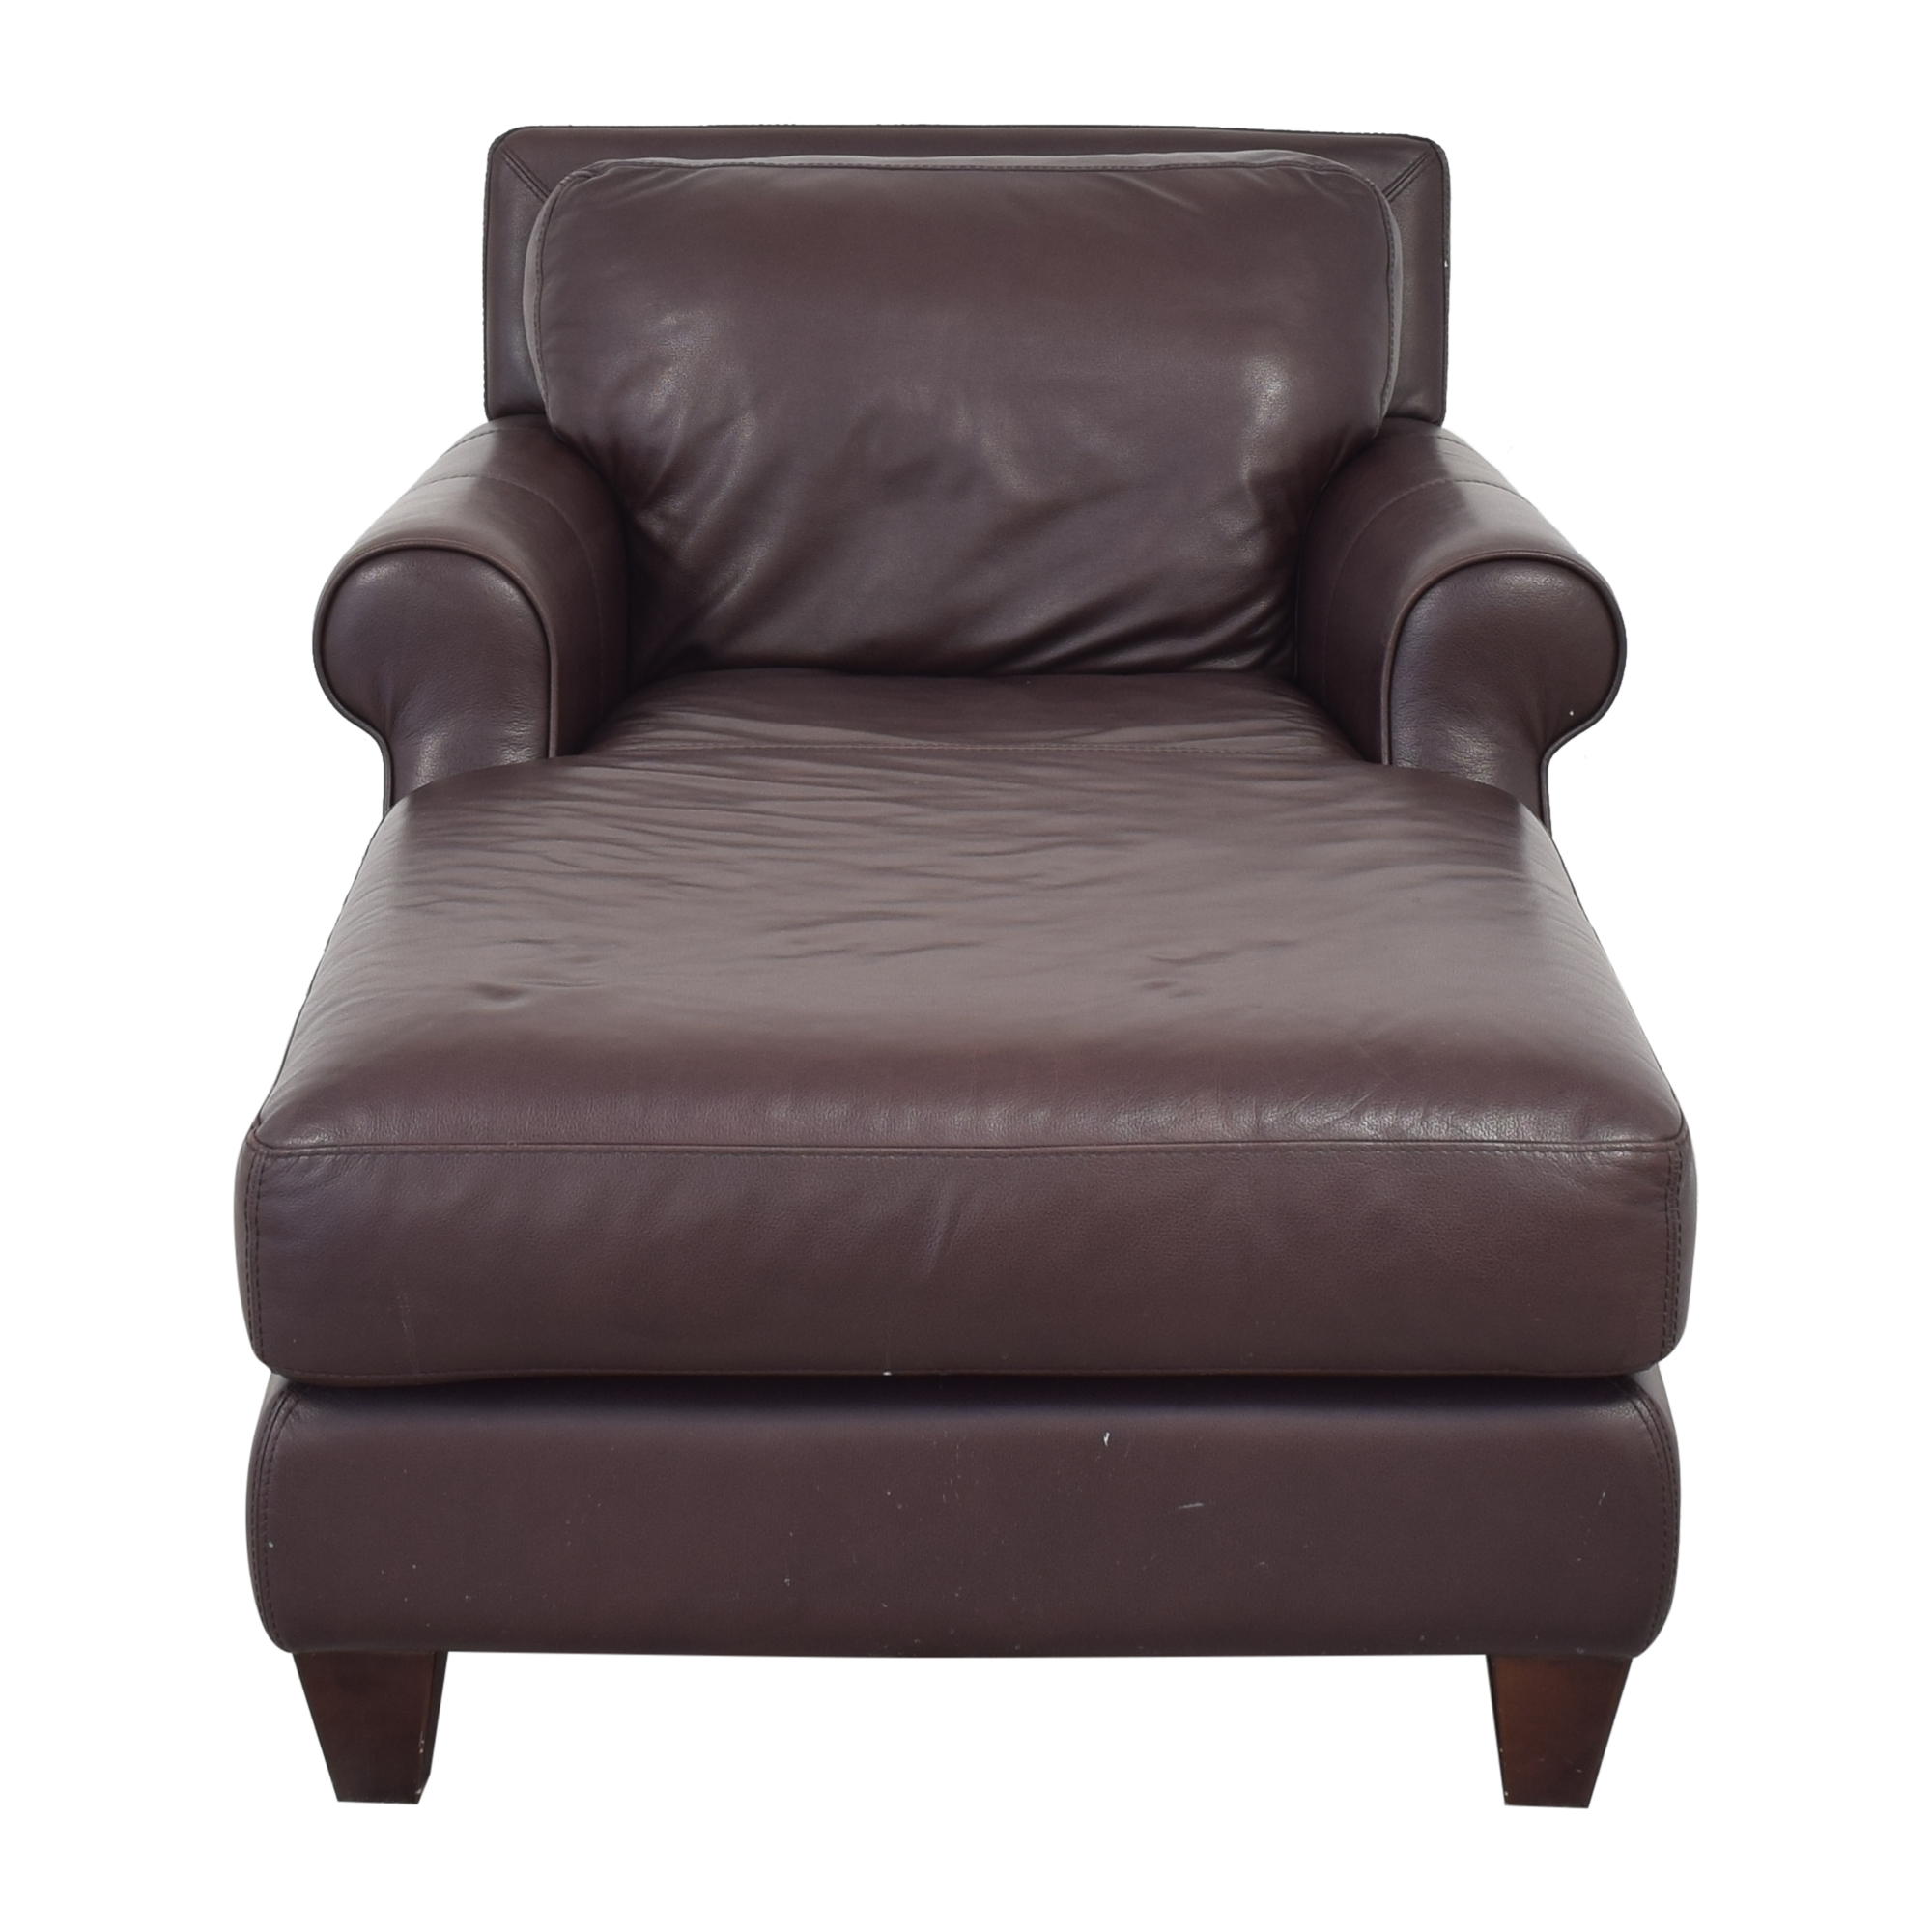 Chateau d'Ax Chateau d'Ax Roll Arm Chaise Chair second hand